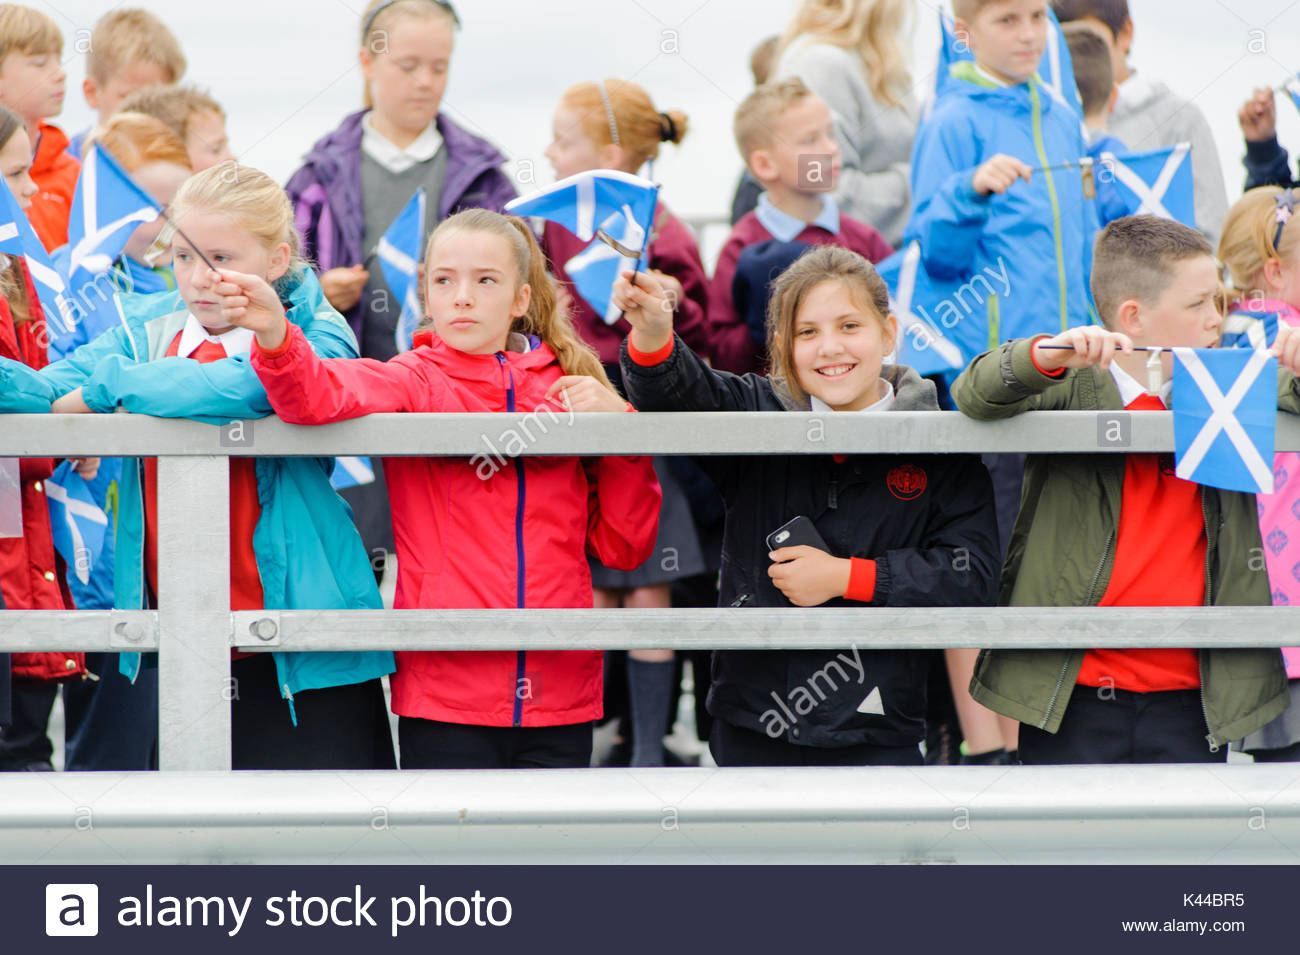 South Queensferry, UK. 4 September, 2017. Excited schoolchildren await the arrival of the Royal party.  The Queen accompanied by Prince Philip officially opens the New Queensferry Crossing on the 53rd anniversary of the day she opened the original Forth Road Bridge.  Credit: Roger Gaisford/Alamy Live News. - Stock Image